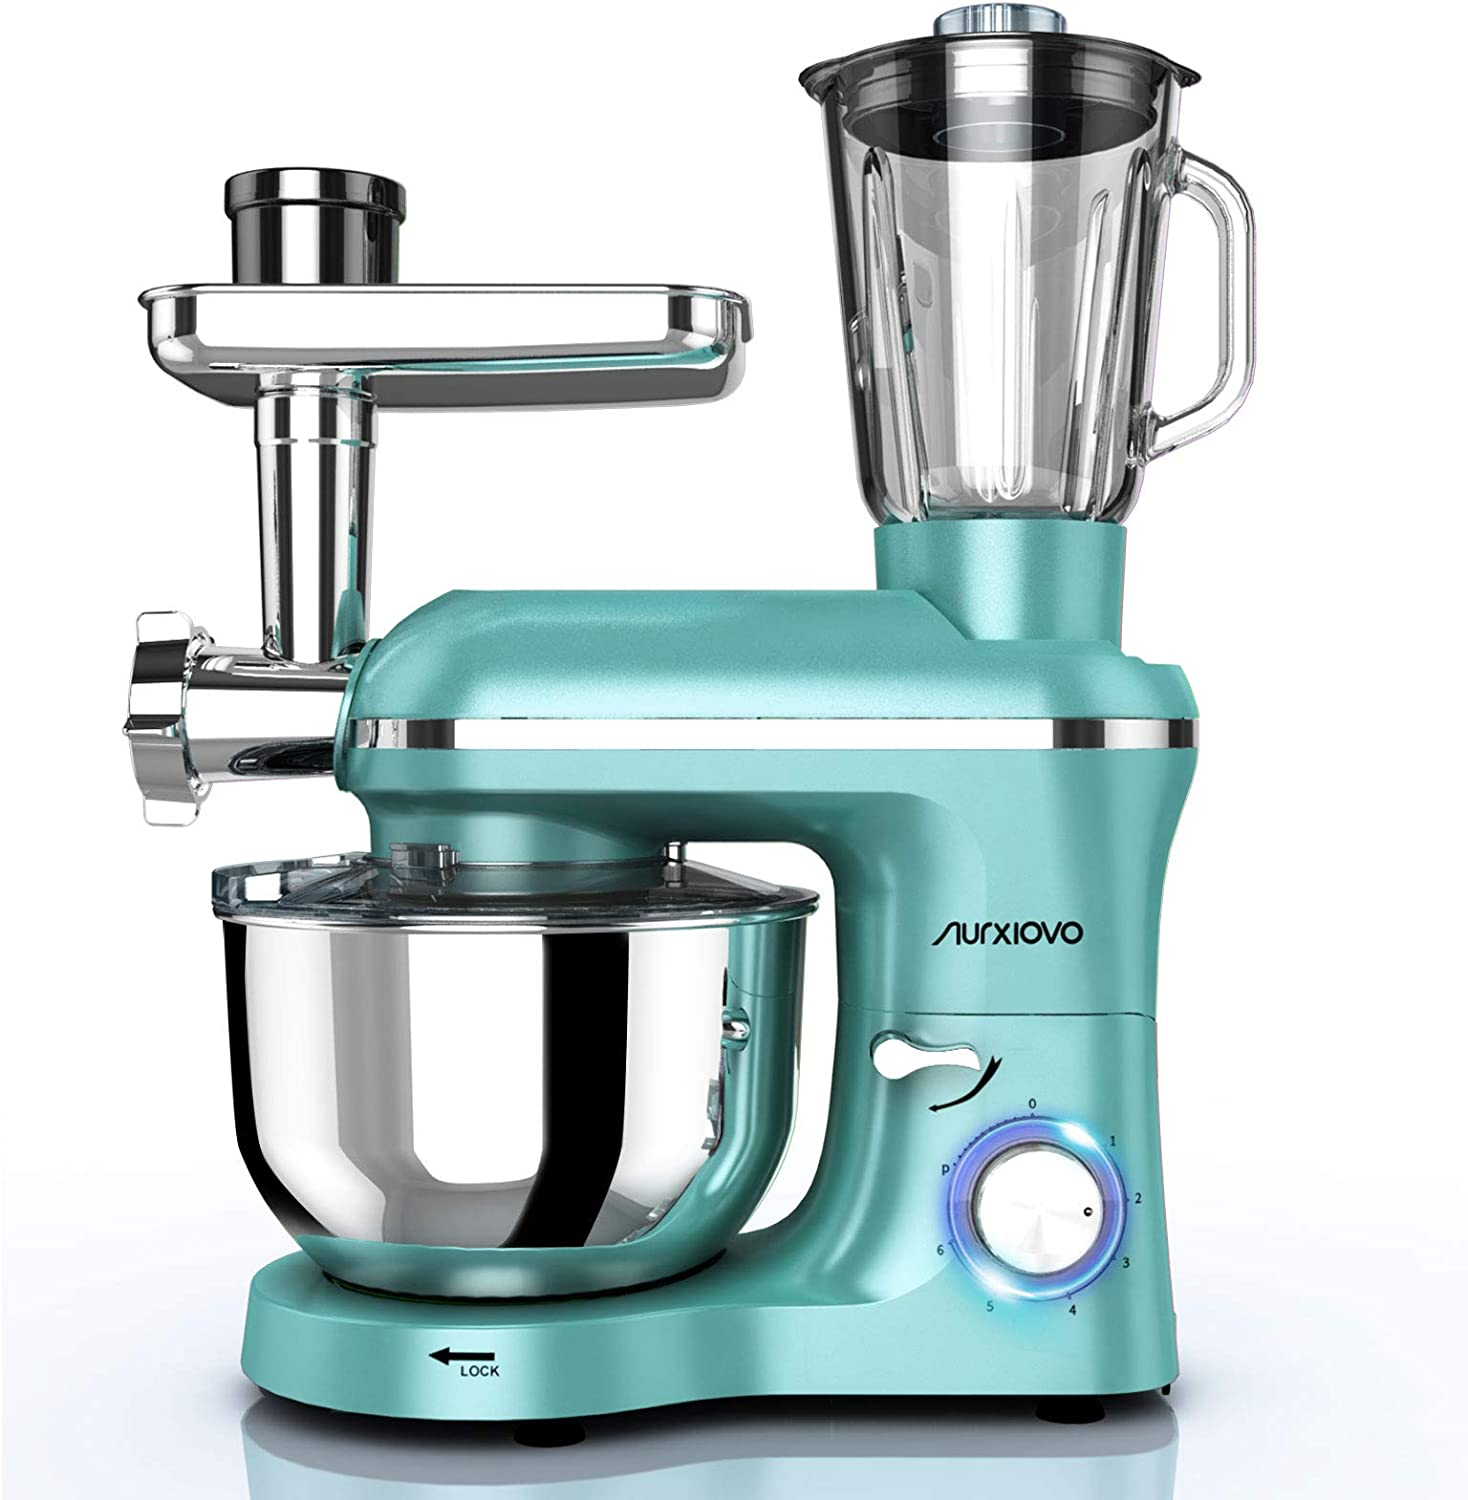 Nurxiovo 3 in 1 850w Stand Mixer Tilt-Head Kitchen Food Mixer, 6 Speed with Pulse Electric Mixer, Multifunction Standing Mixers, Meat Blender and Juice Extracter (Mint Green)